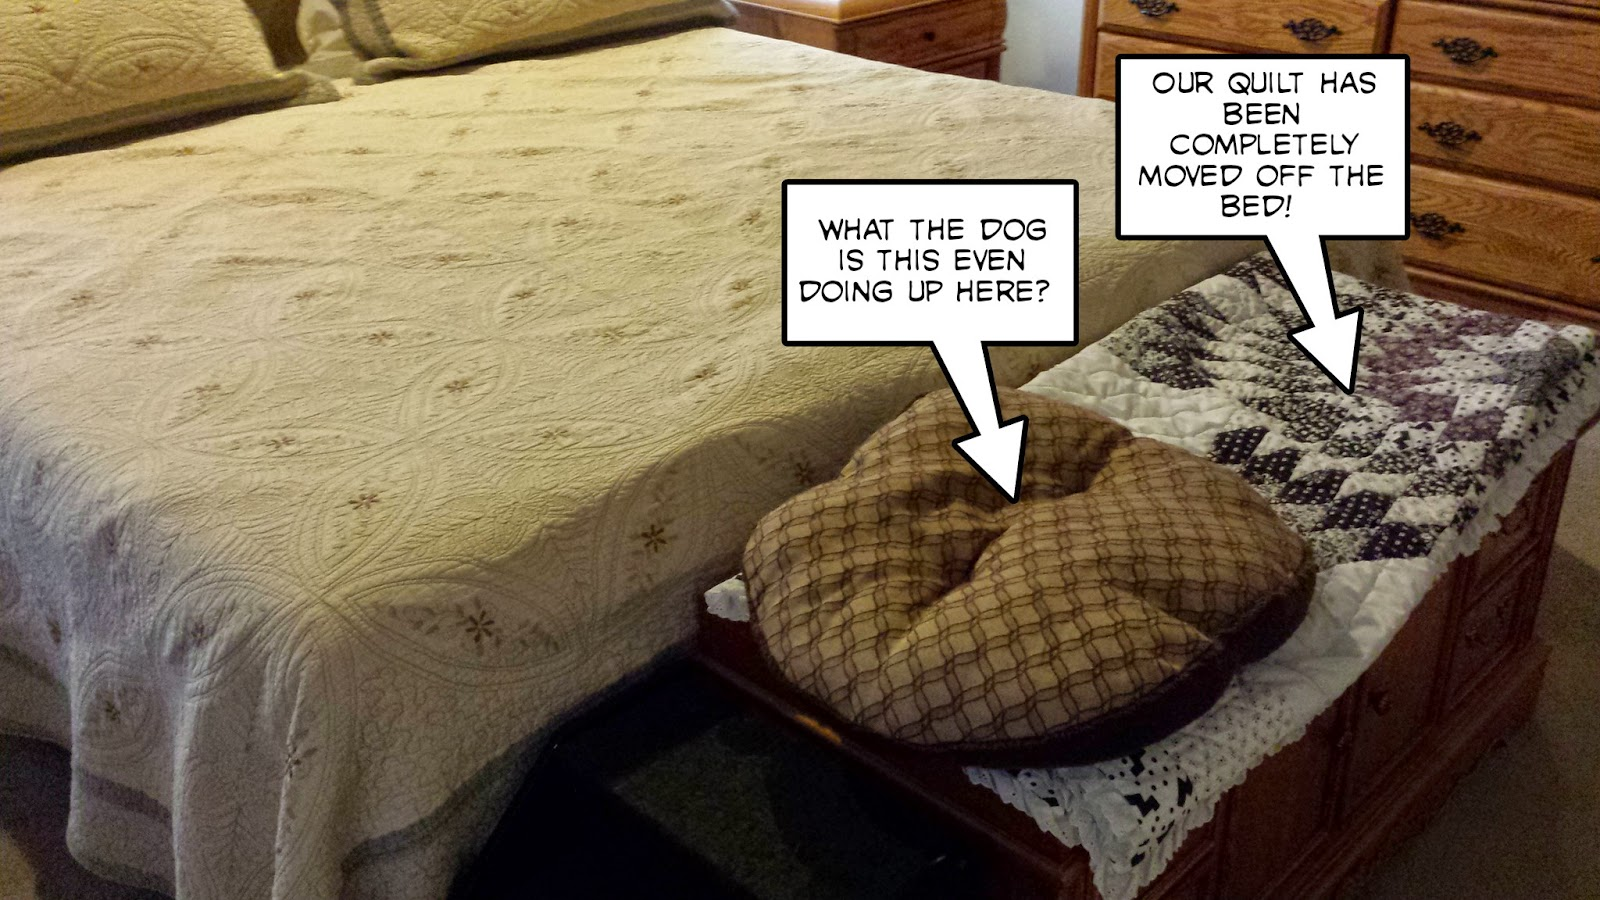 Dog hogging the bed - Oh My Dog What Is She Thinking So We Tried A Couple Nights With The New Rules And New Bed I Took A Little Nap On The Quilt And It Wasn T